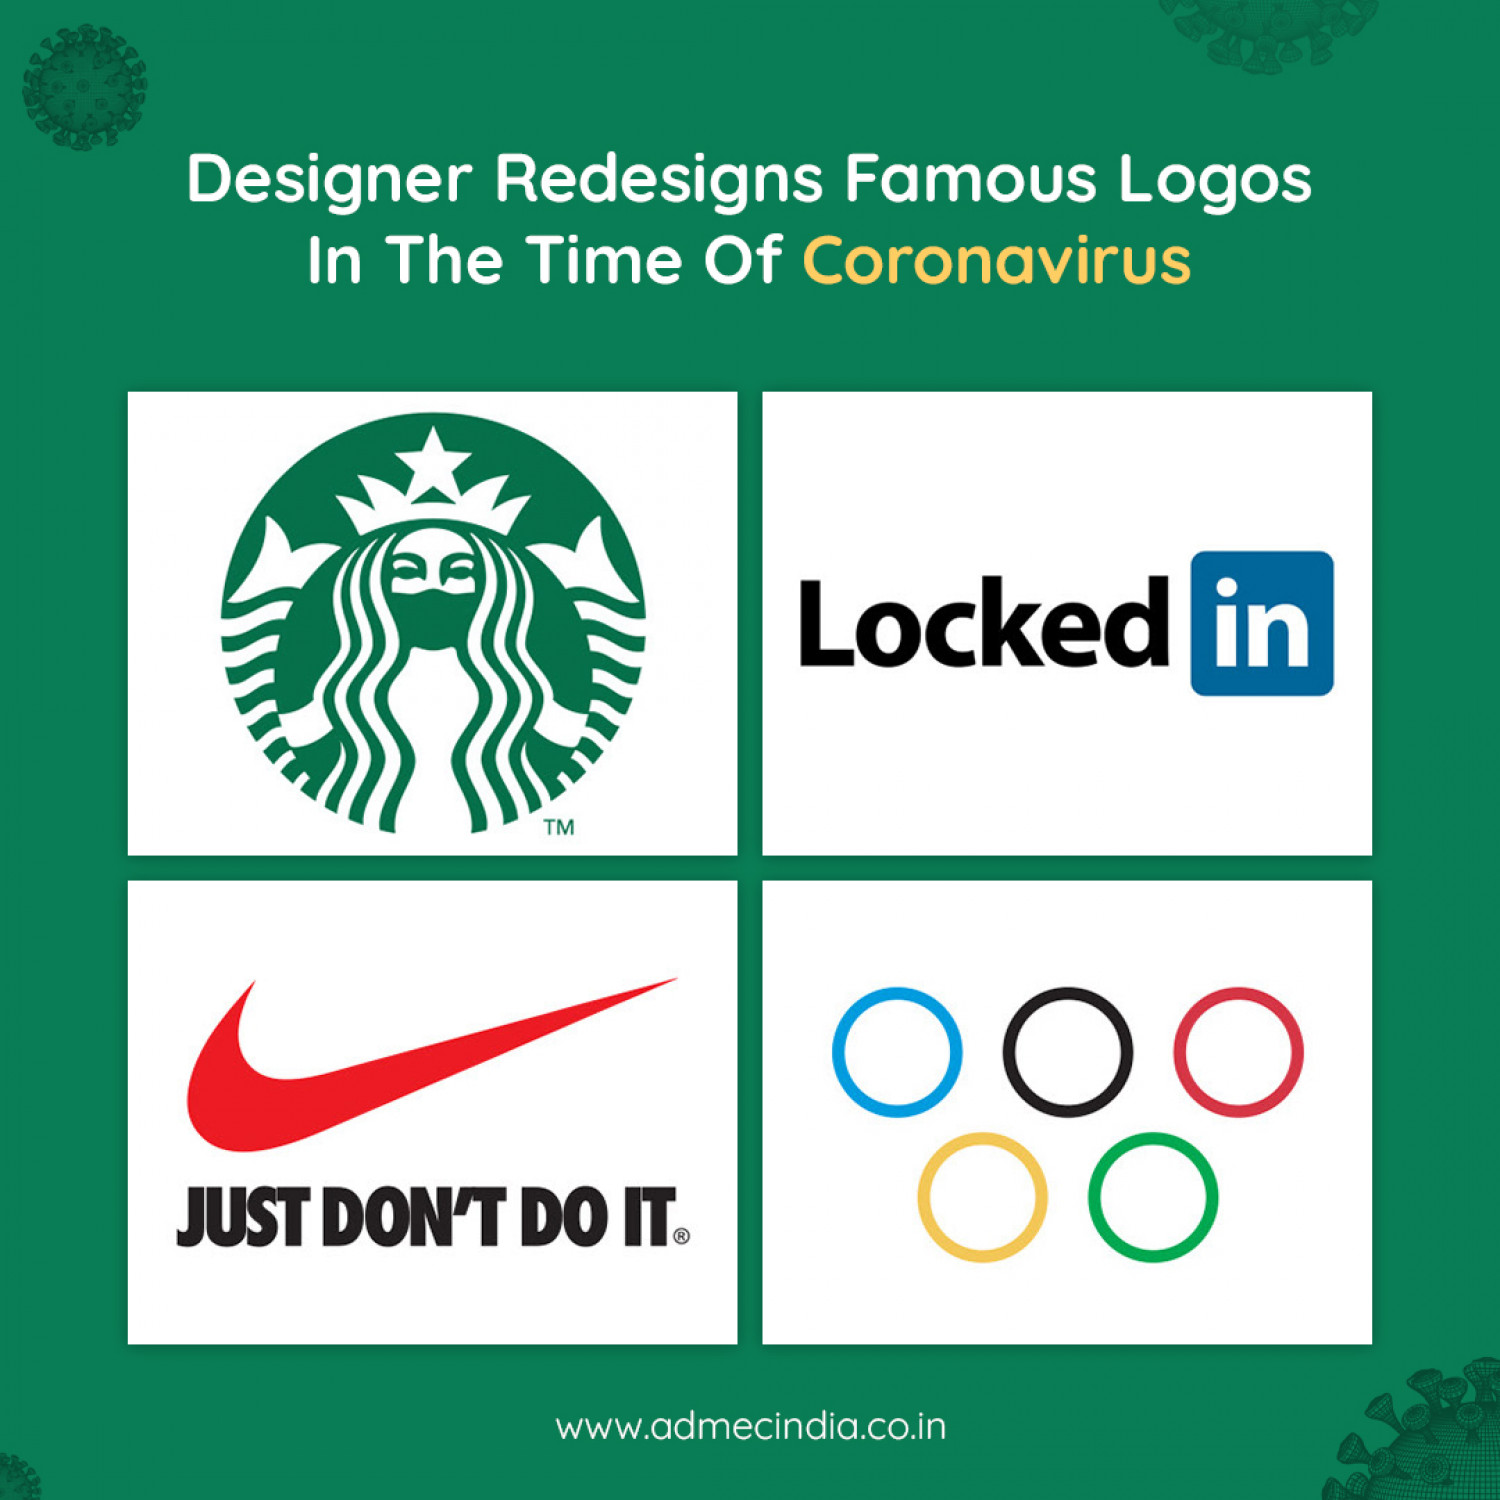 Designers redesign famous logos In the time of coronavirus Infographic